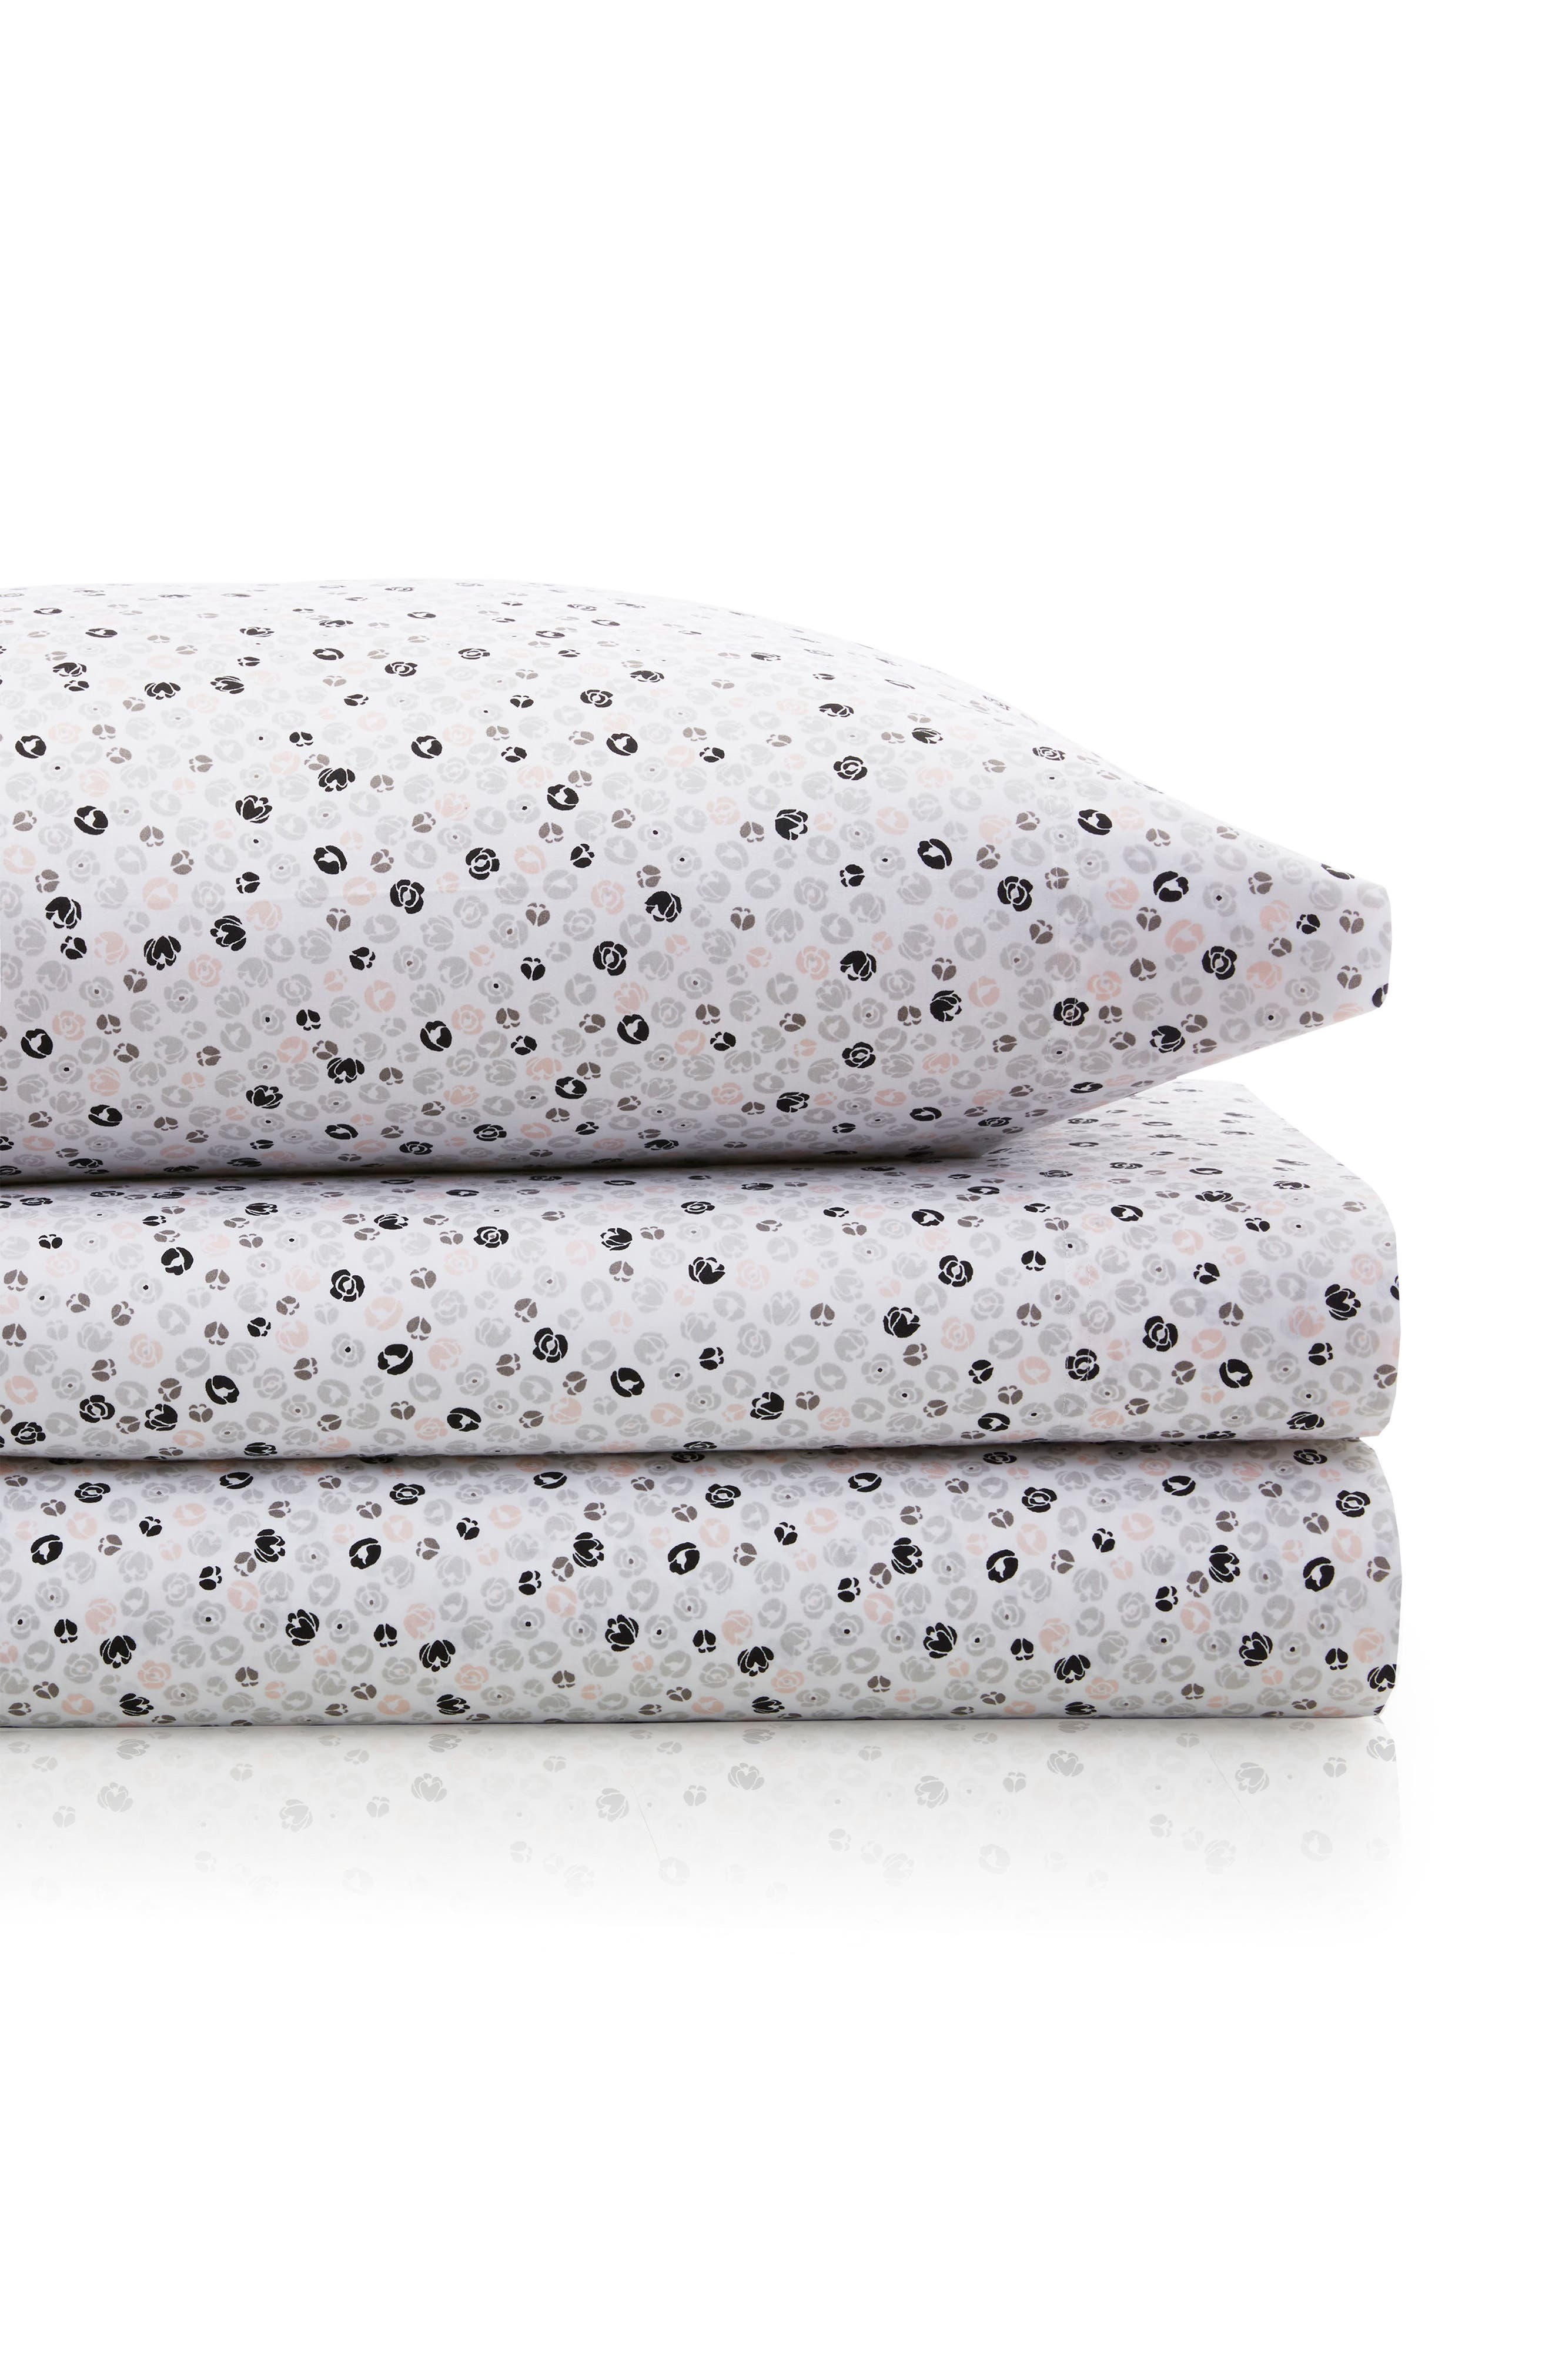 Main Image - BCBGeneration Ditsy Floral 200 Thread Count Sheet Set